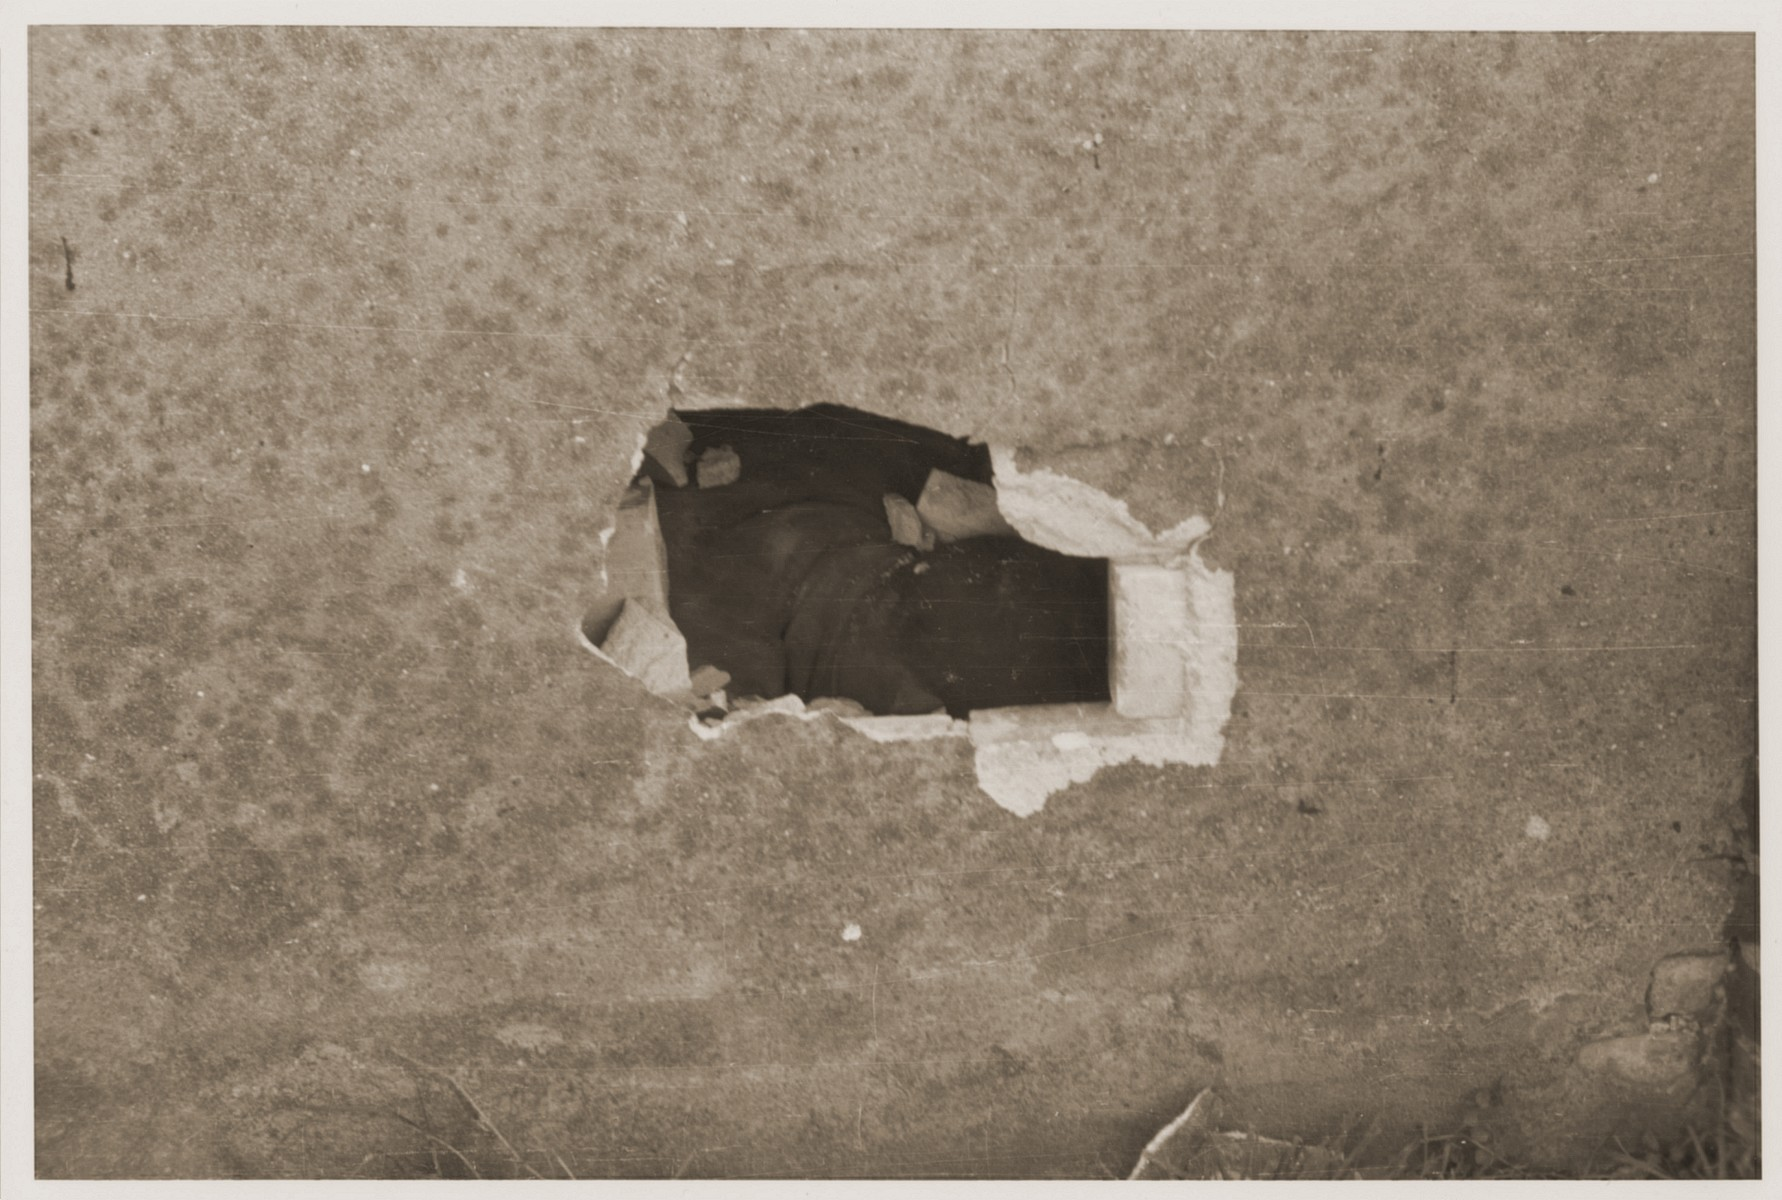 A hole in the barn wall through which the SS and their cohorts shot prisoners kept inside.